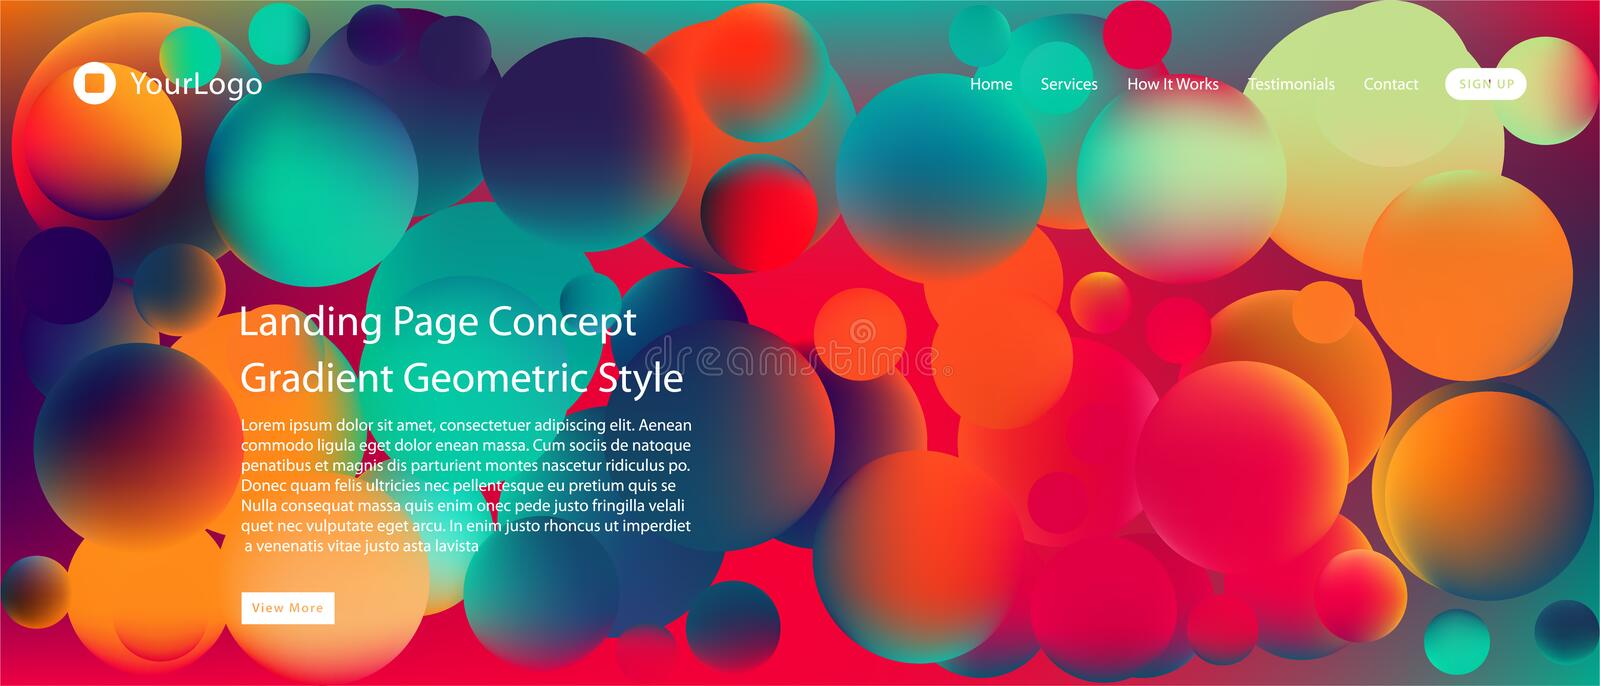 Website or mobile app landing page with illustration of Abstract Colorful Minimal Geometric Pattern Background Design and Gradient. Shapes royalty free illustration